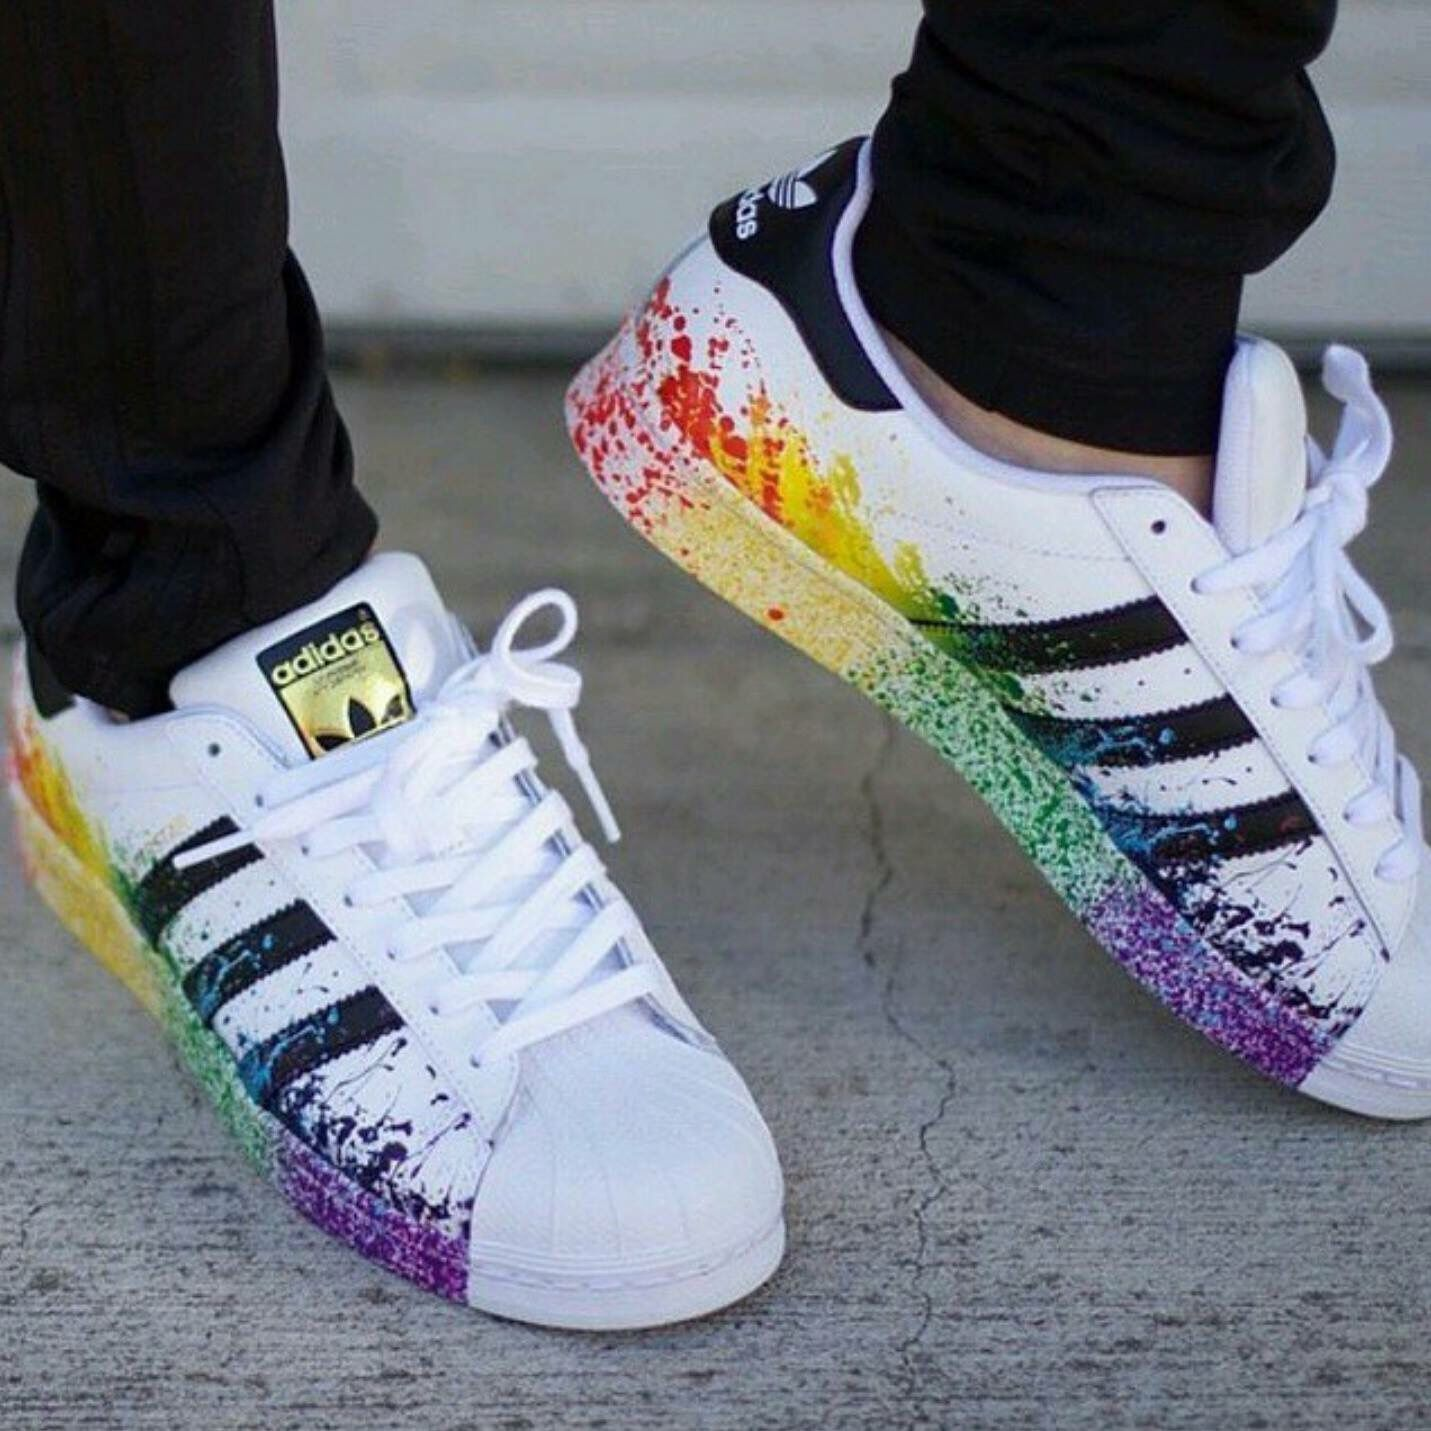 Adidas Originals [D70351] Men's Superstar LGBT Pride Pack 2015 Rainbow  Splatter | LGBTQ+ | Pinterest | lGBT, Pride and Adidas